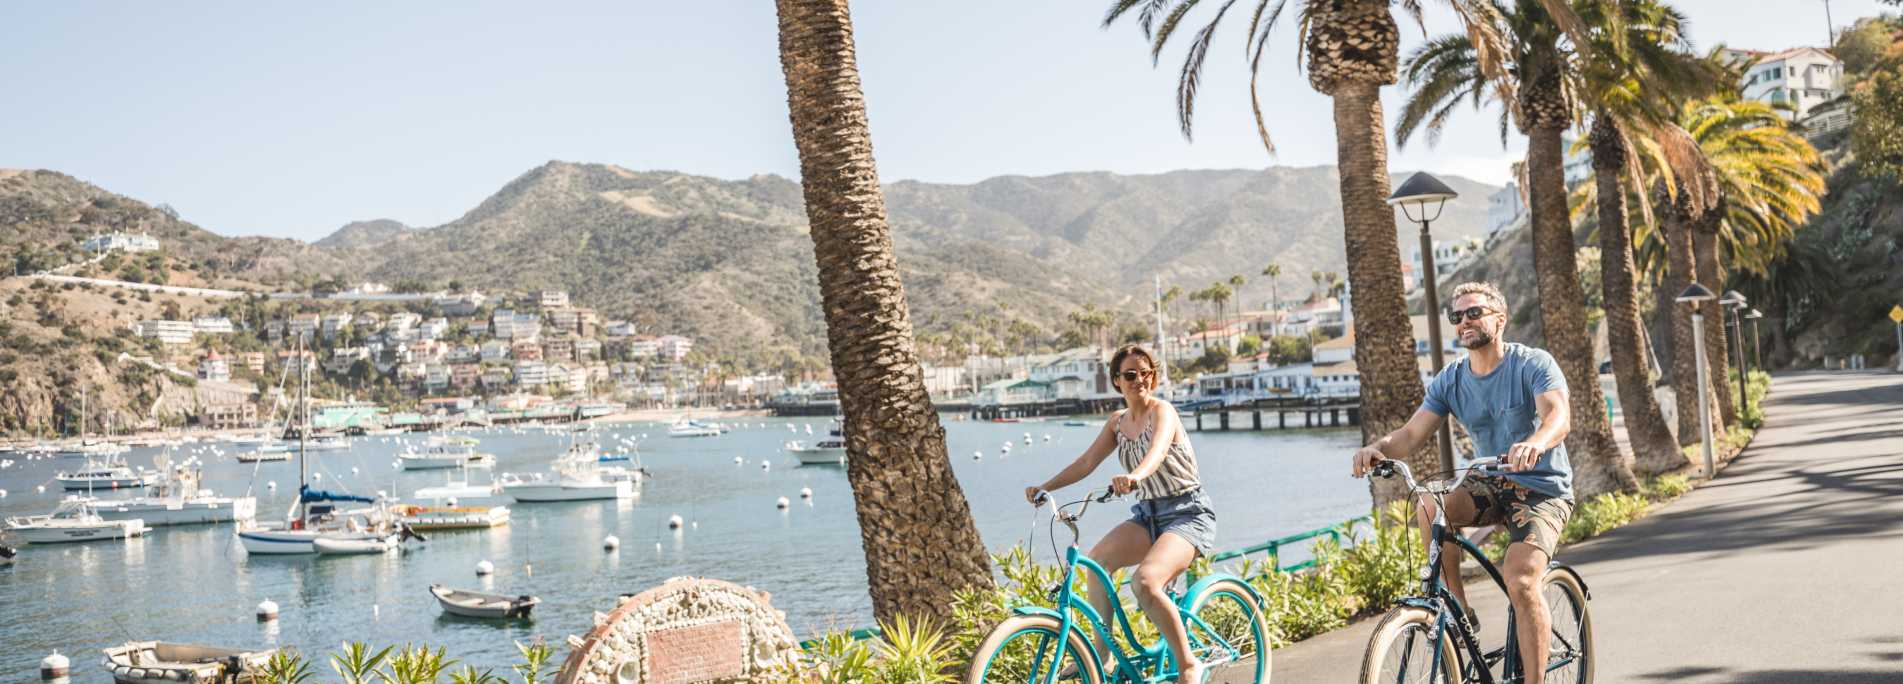 Things To Do In Catalina Island Activities Adventures Catalina